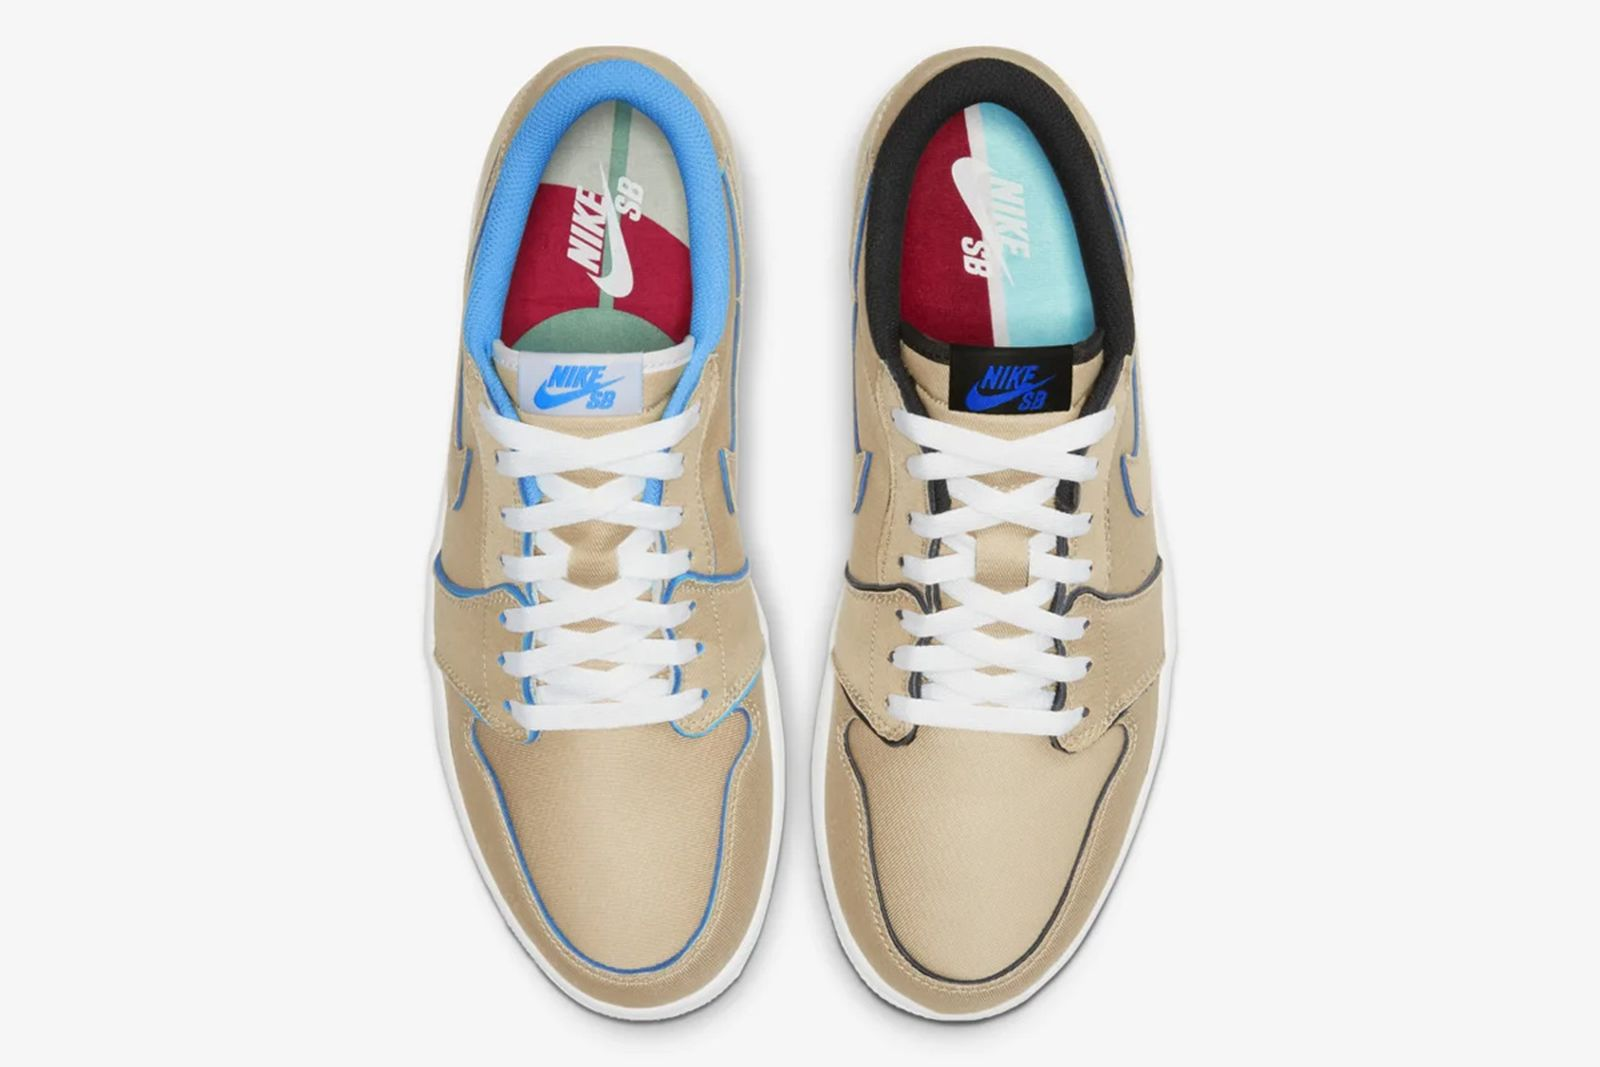 nike-air-jordan-1-low-unc-royal-release-date-price-06